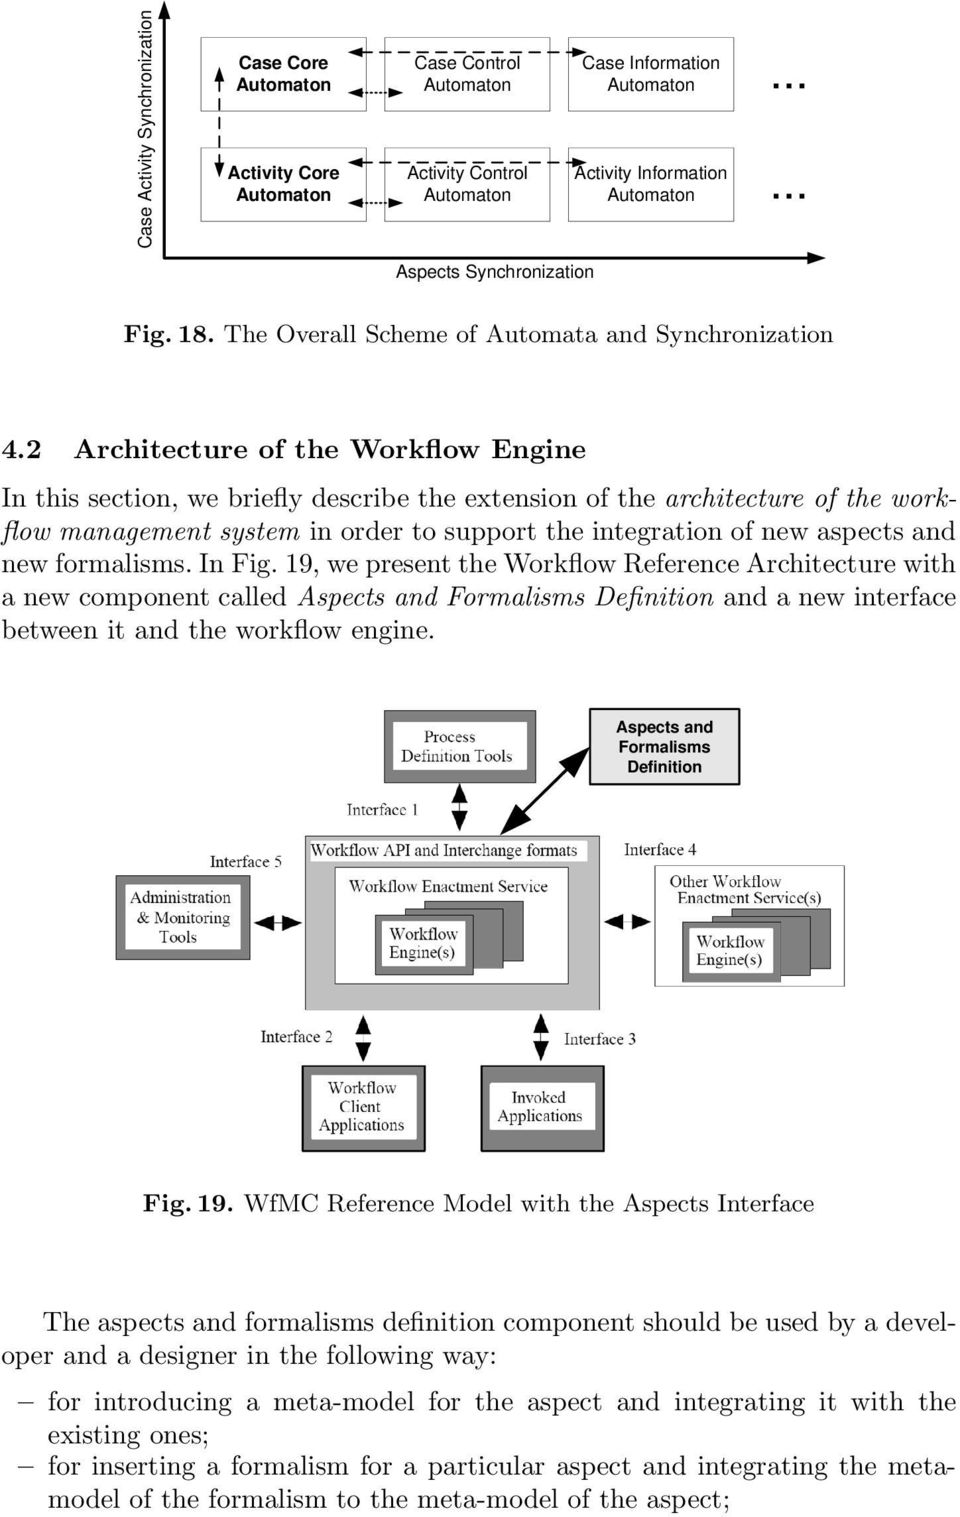 2 Architecture of the Workflow Engine In this section, we briefly describe the extension of the architecture of the workflow management system in order to support the integration of new aspects and